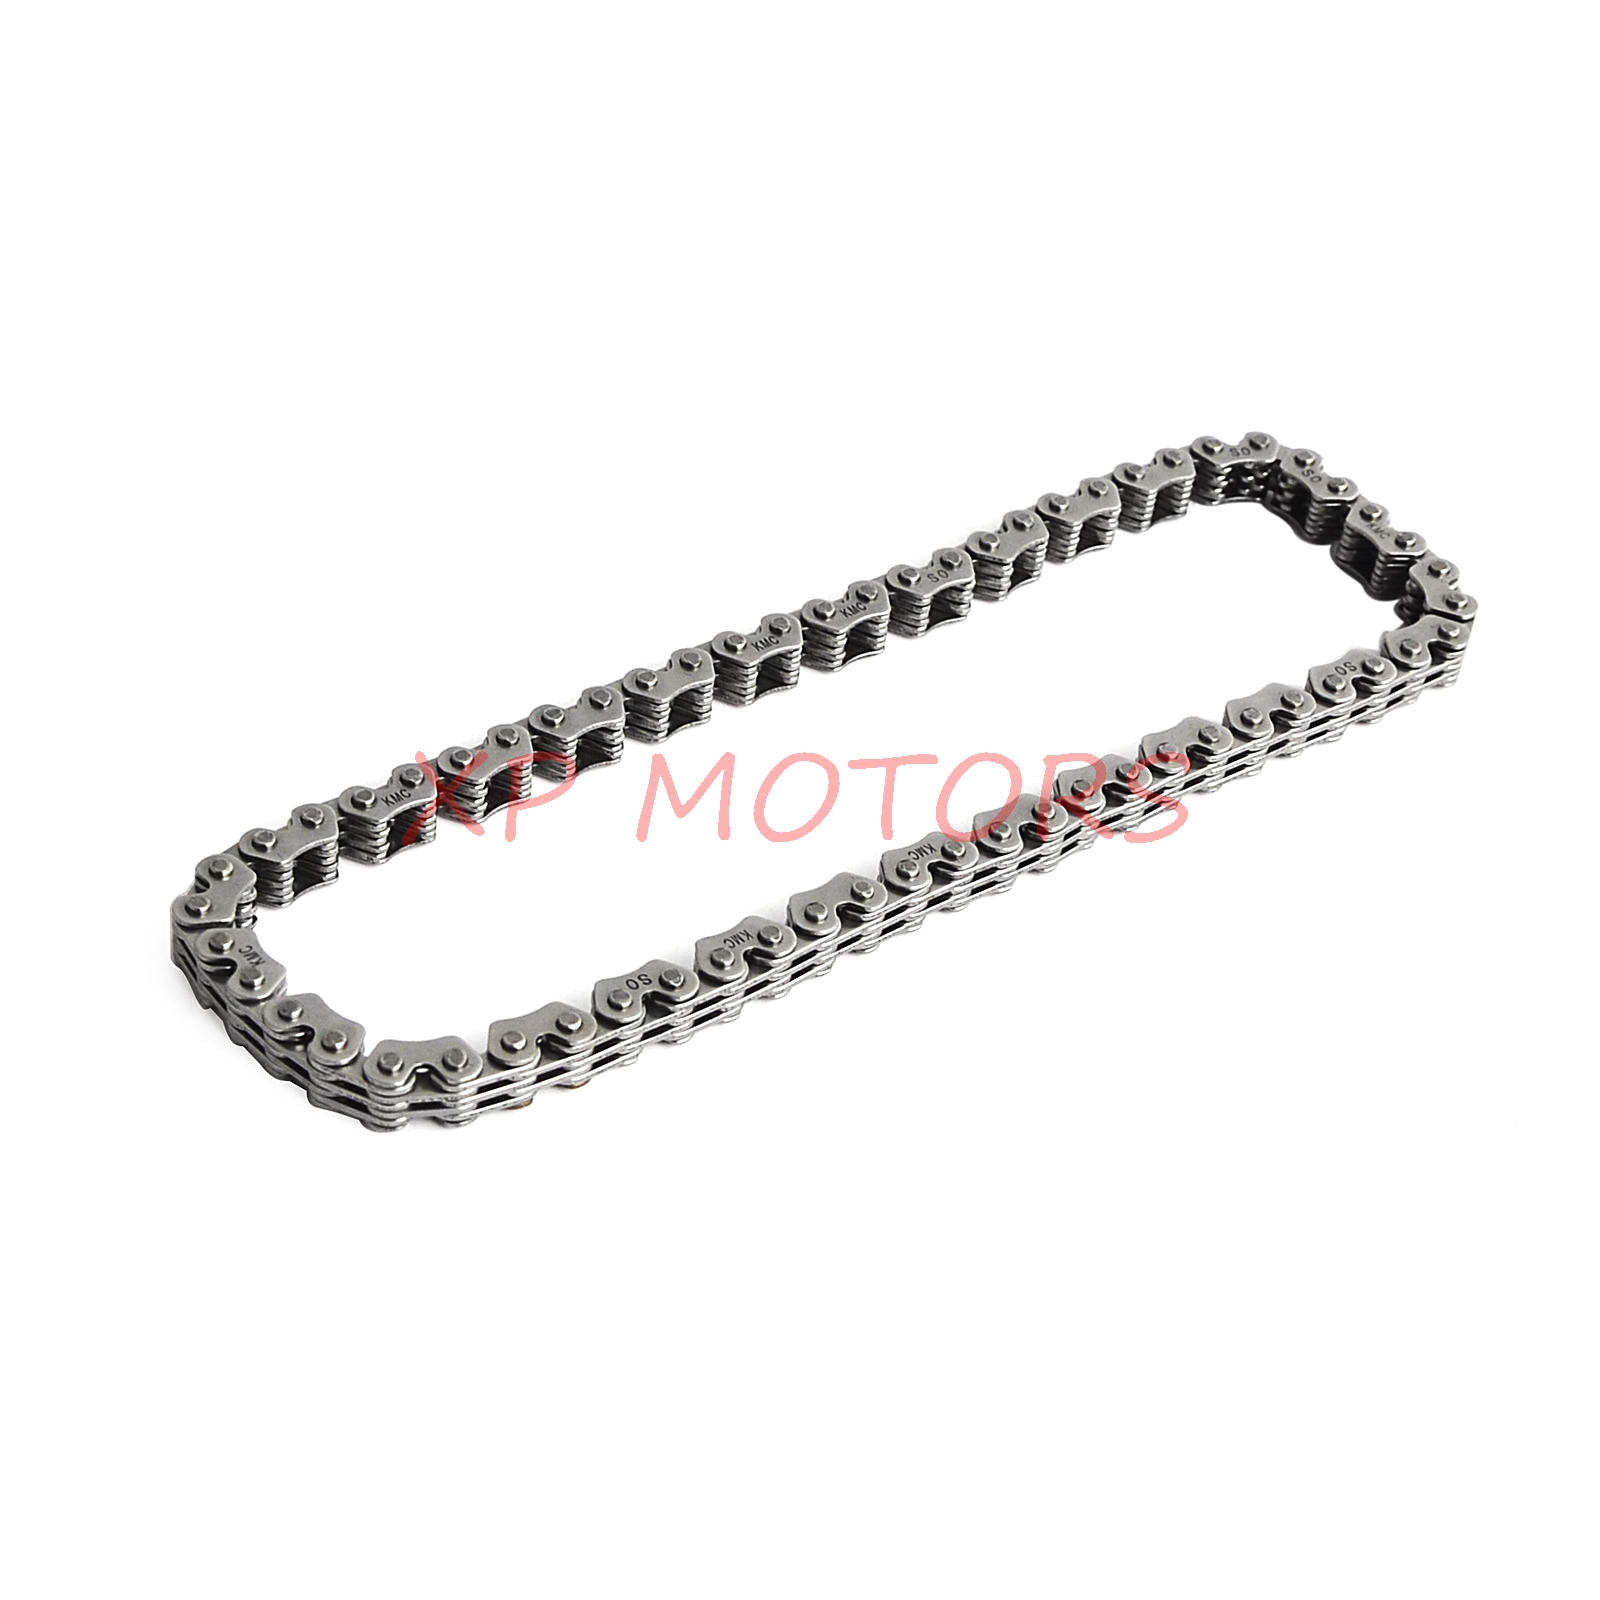 Cam Chain Timing Chain Fits For Rancher 420